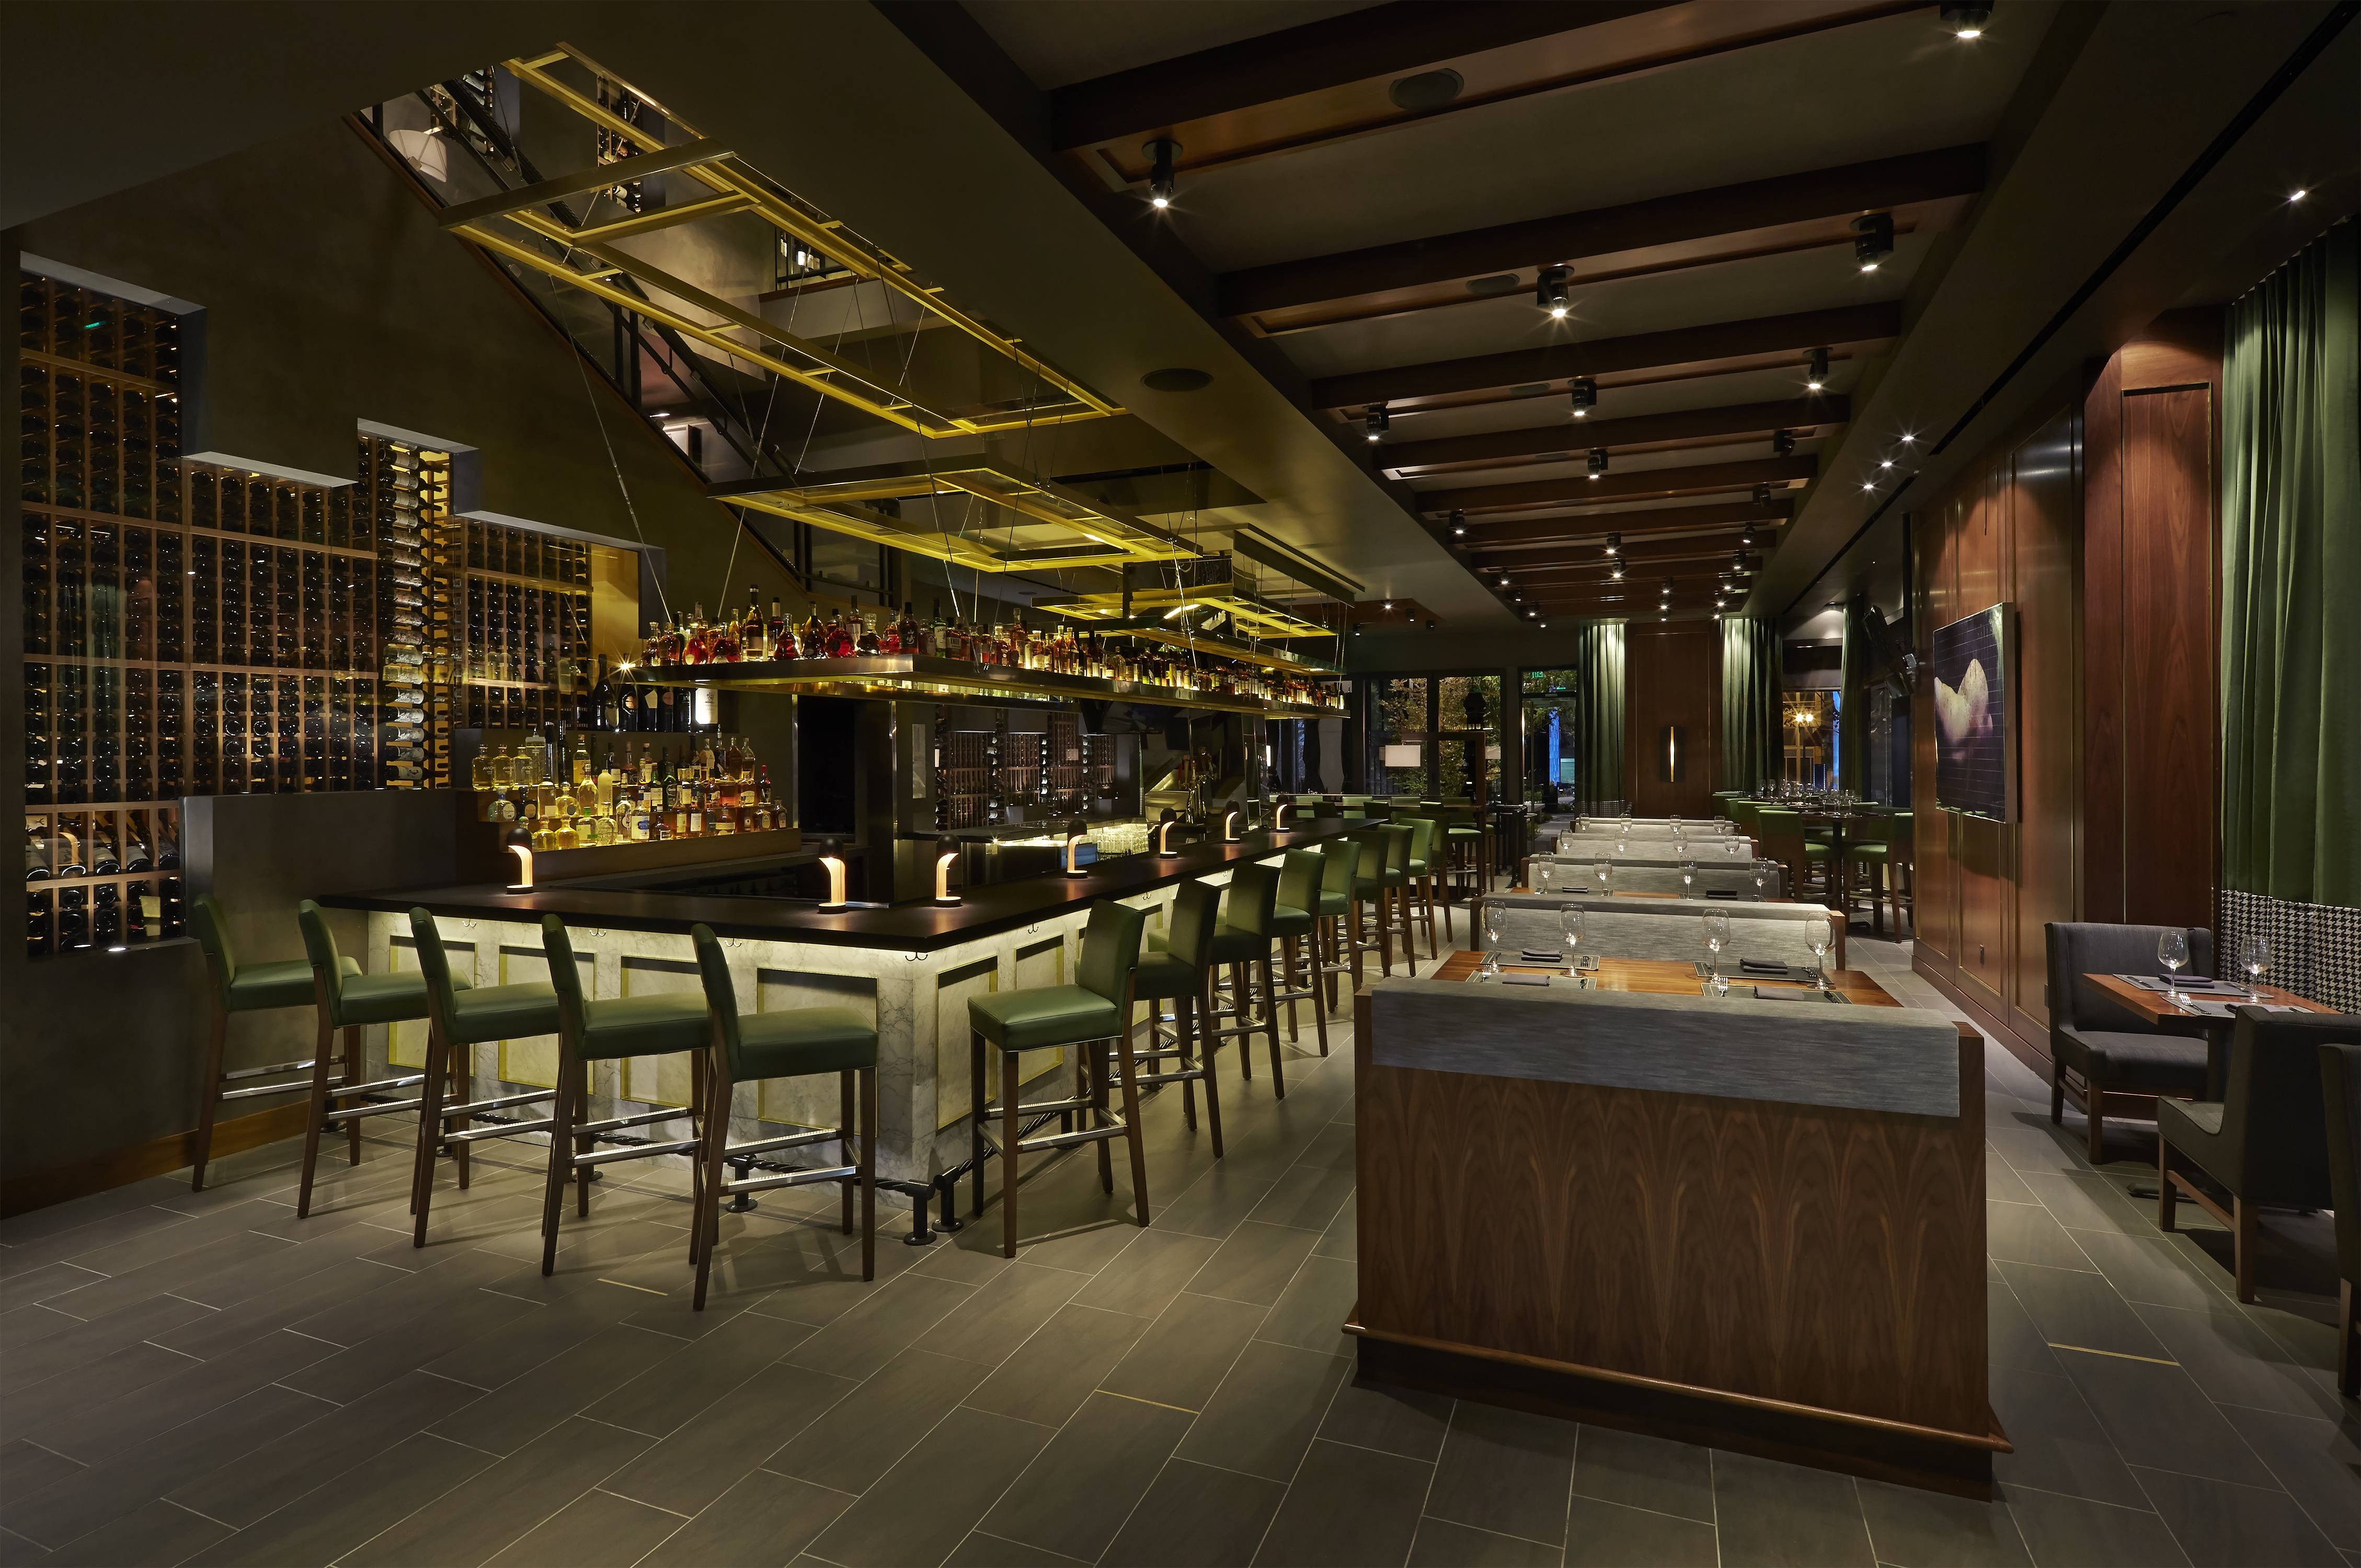 Del Frisco S Double Eagle Steak House Interior Bar And Dining Area